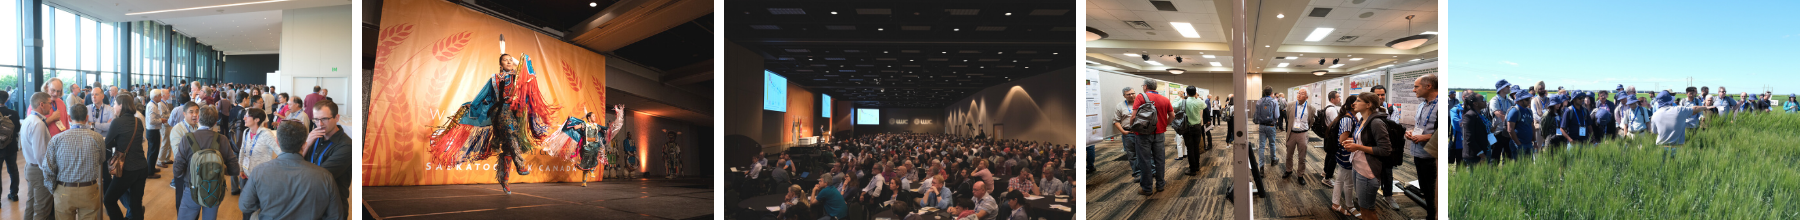 Venue West Conference Services - Past Events - IWC 2019